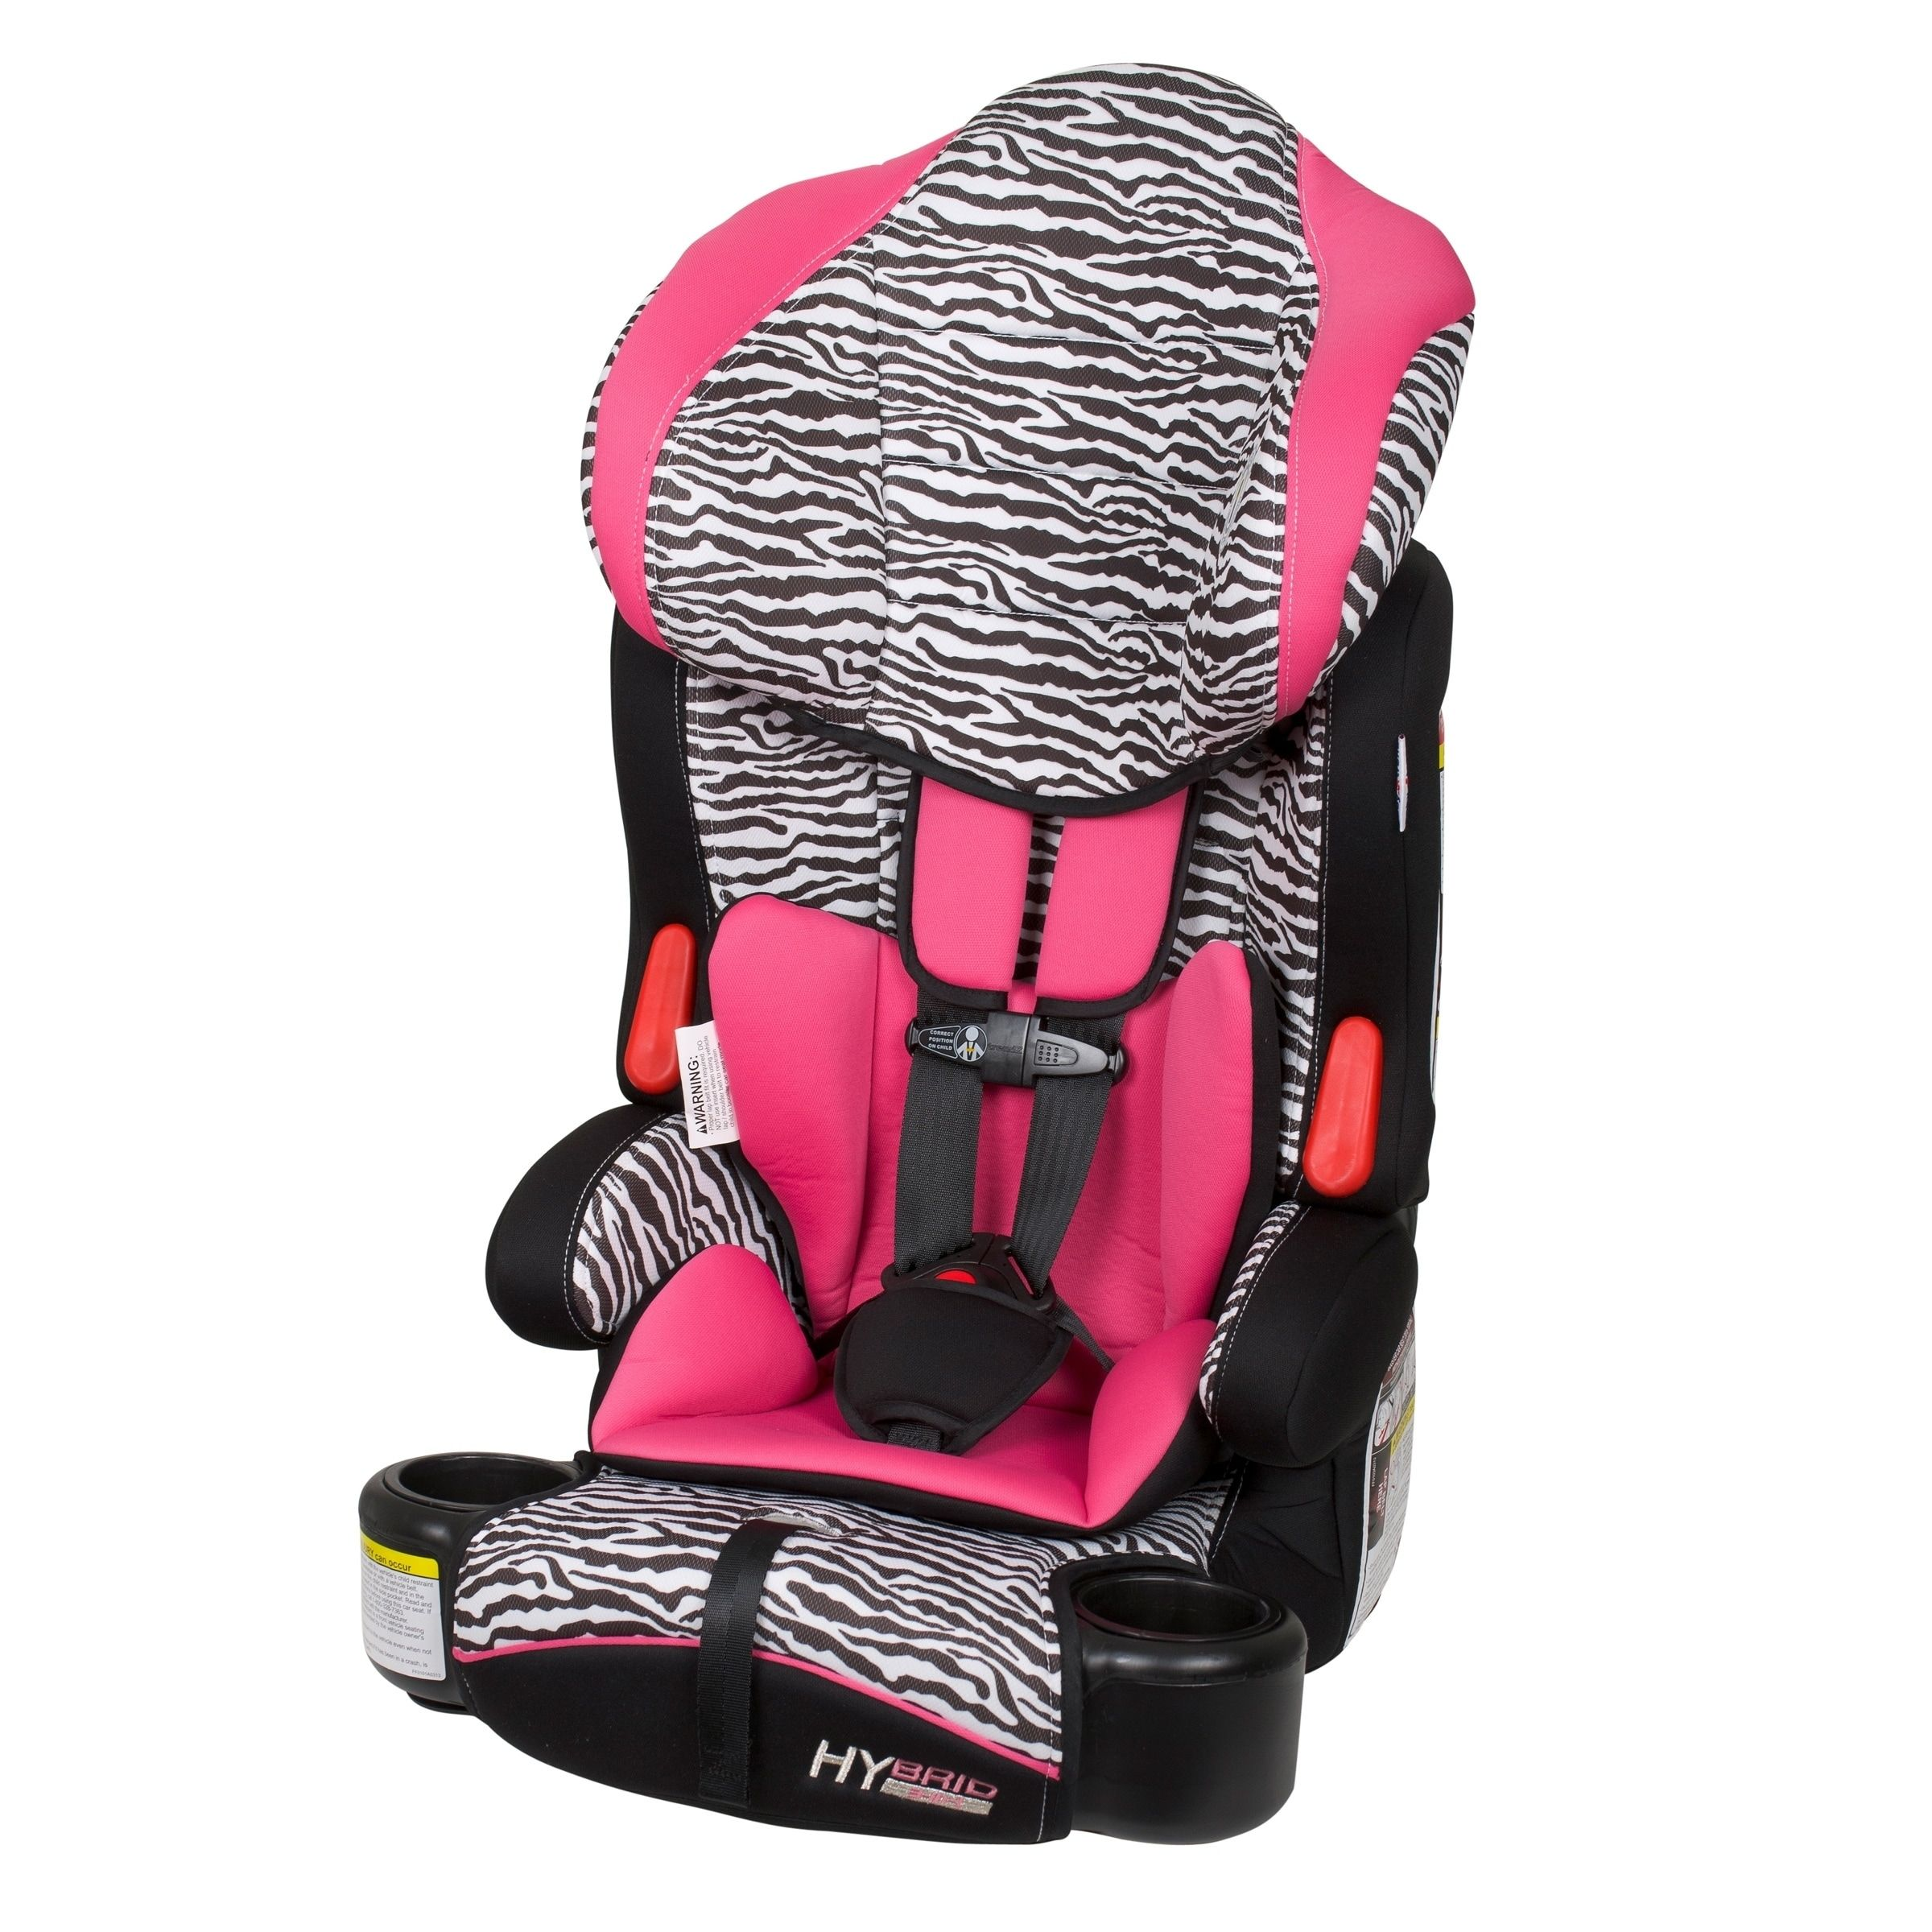 Baby Trend Hybrid 3 In 1 Booster Car SeatCarrie Multi